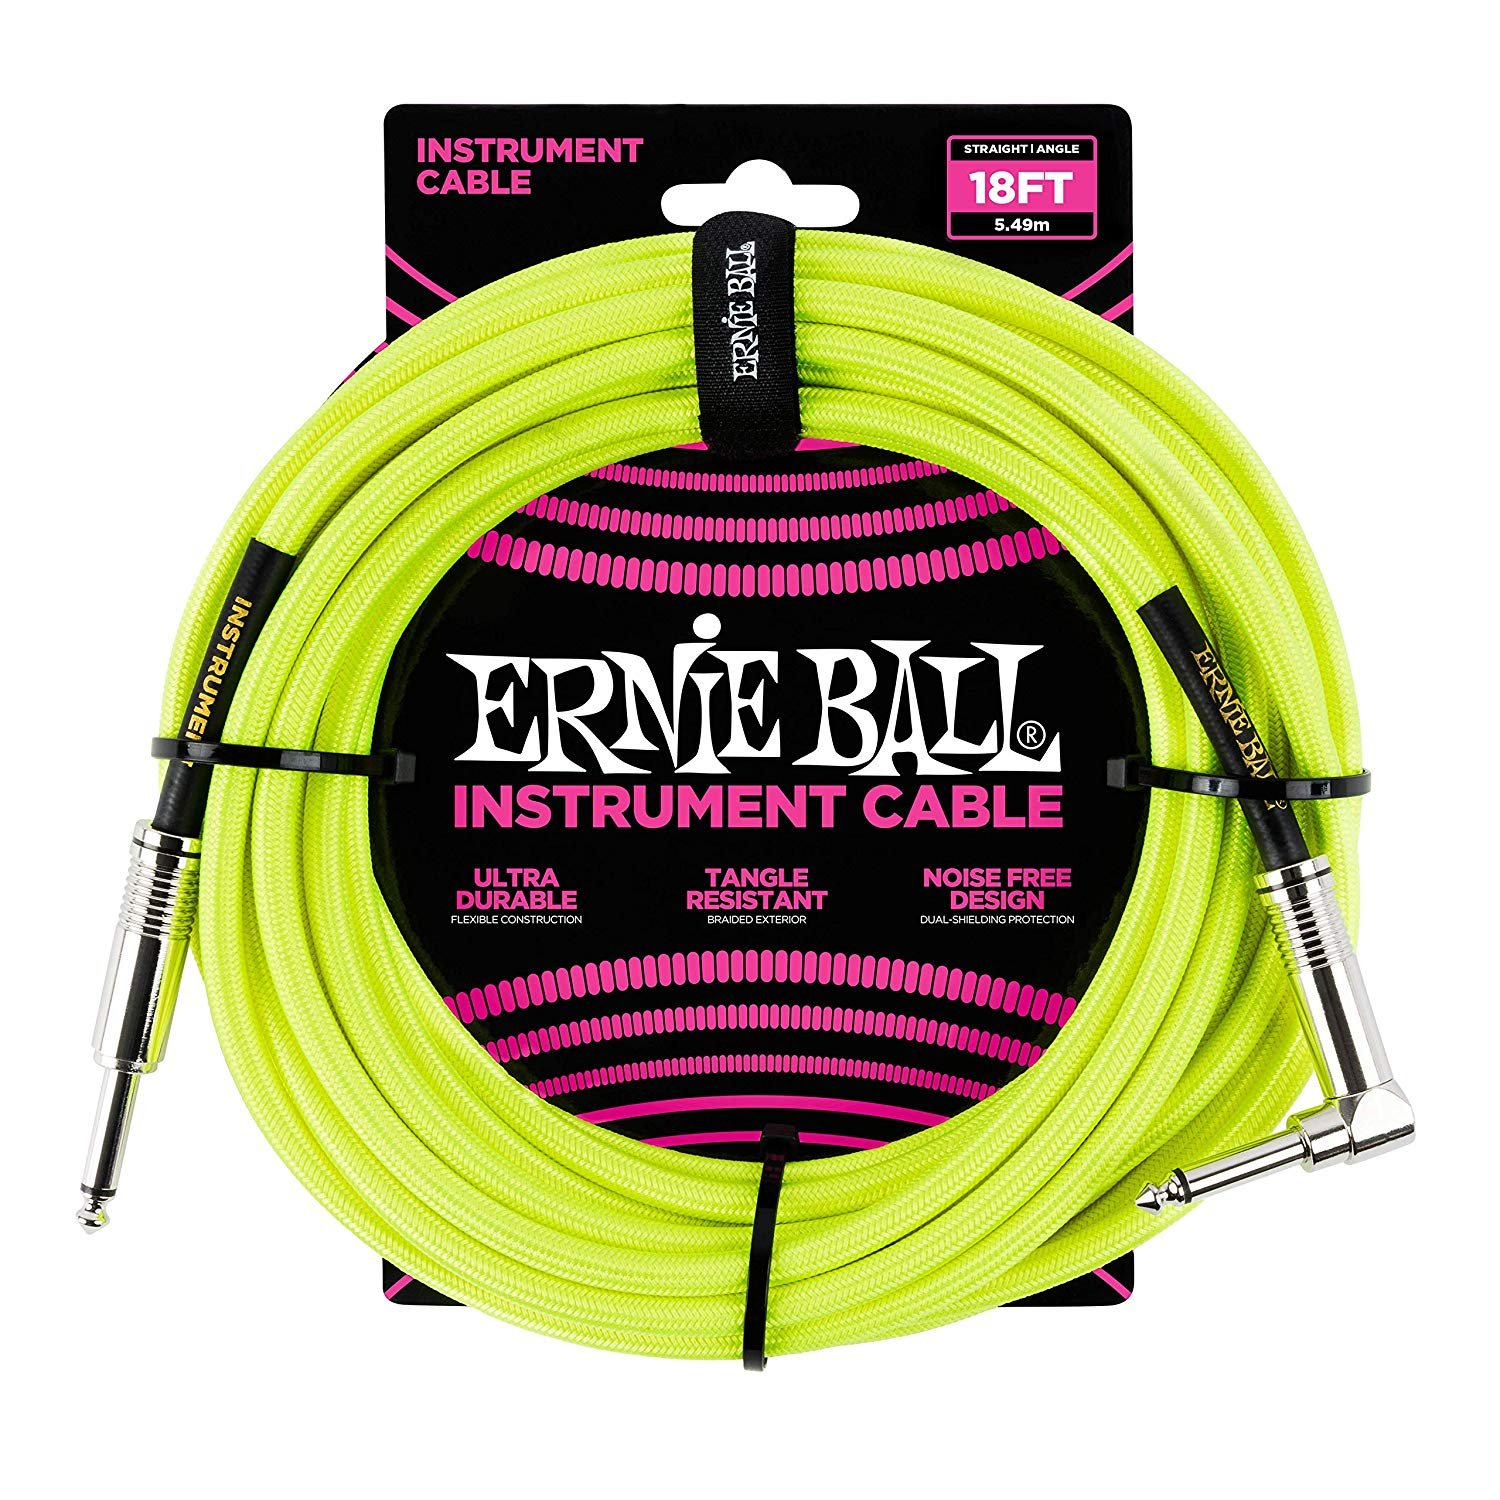 Ernie Ball Neon Yellow Braided Straight/Angle Instrument Cable - 18'